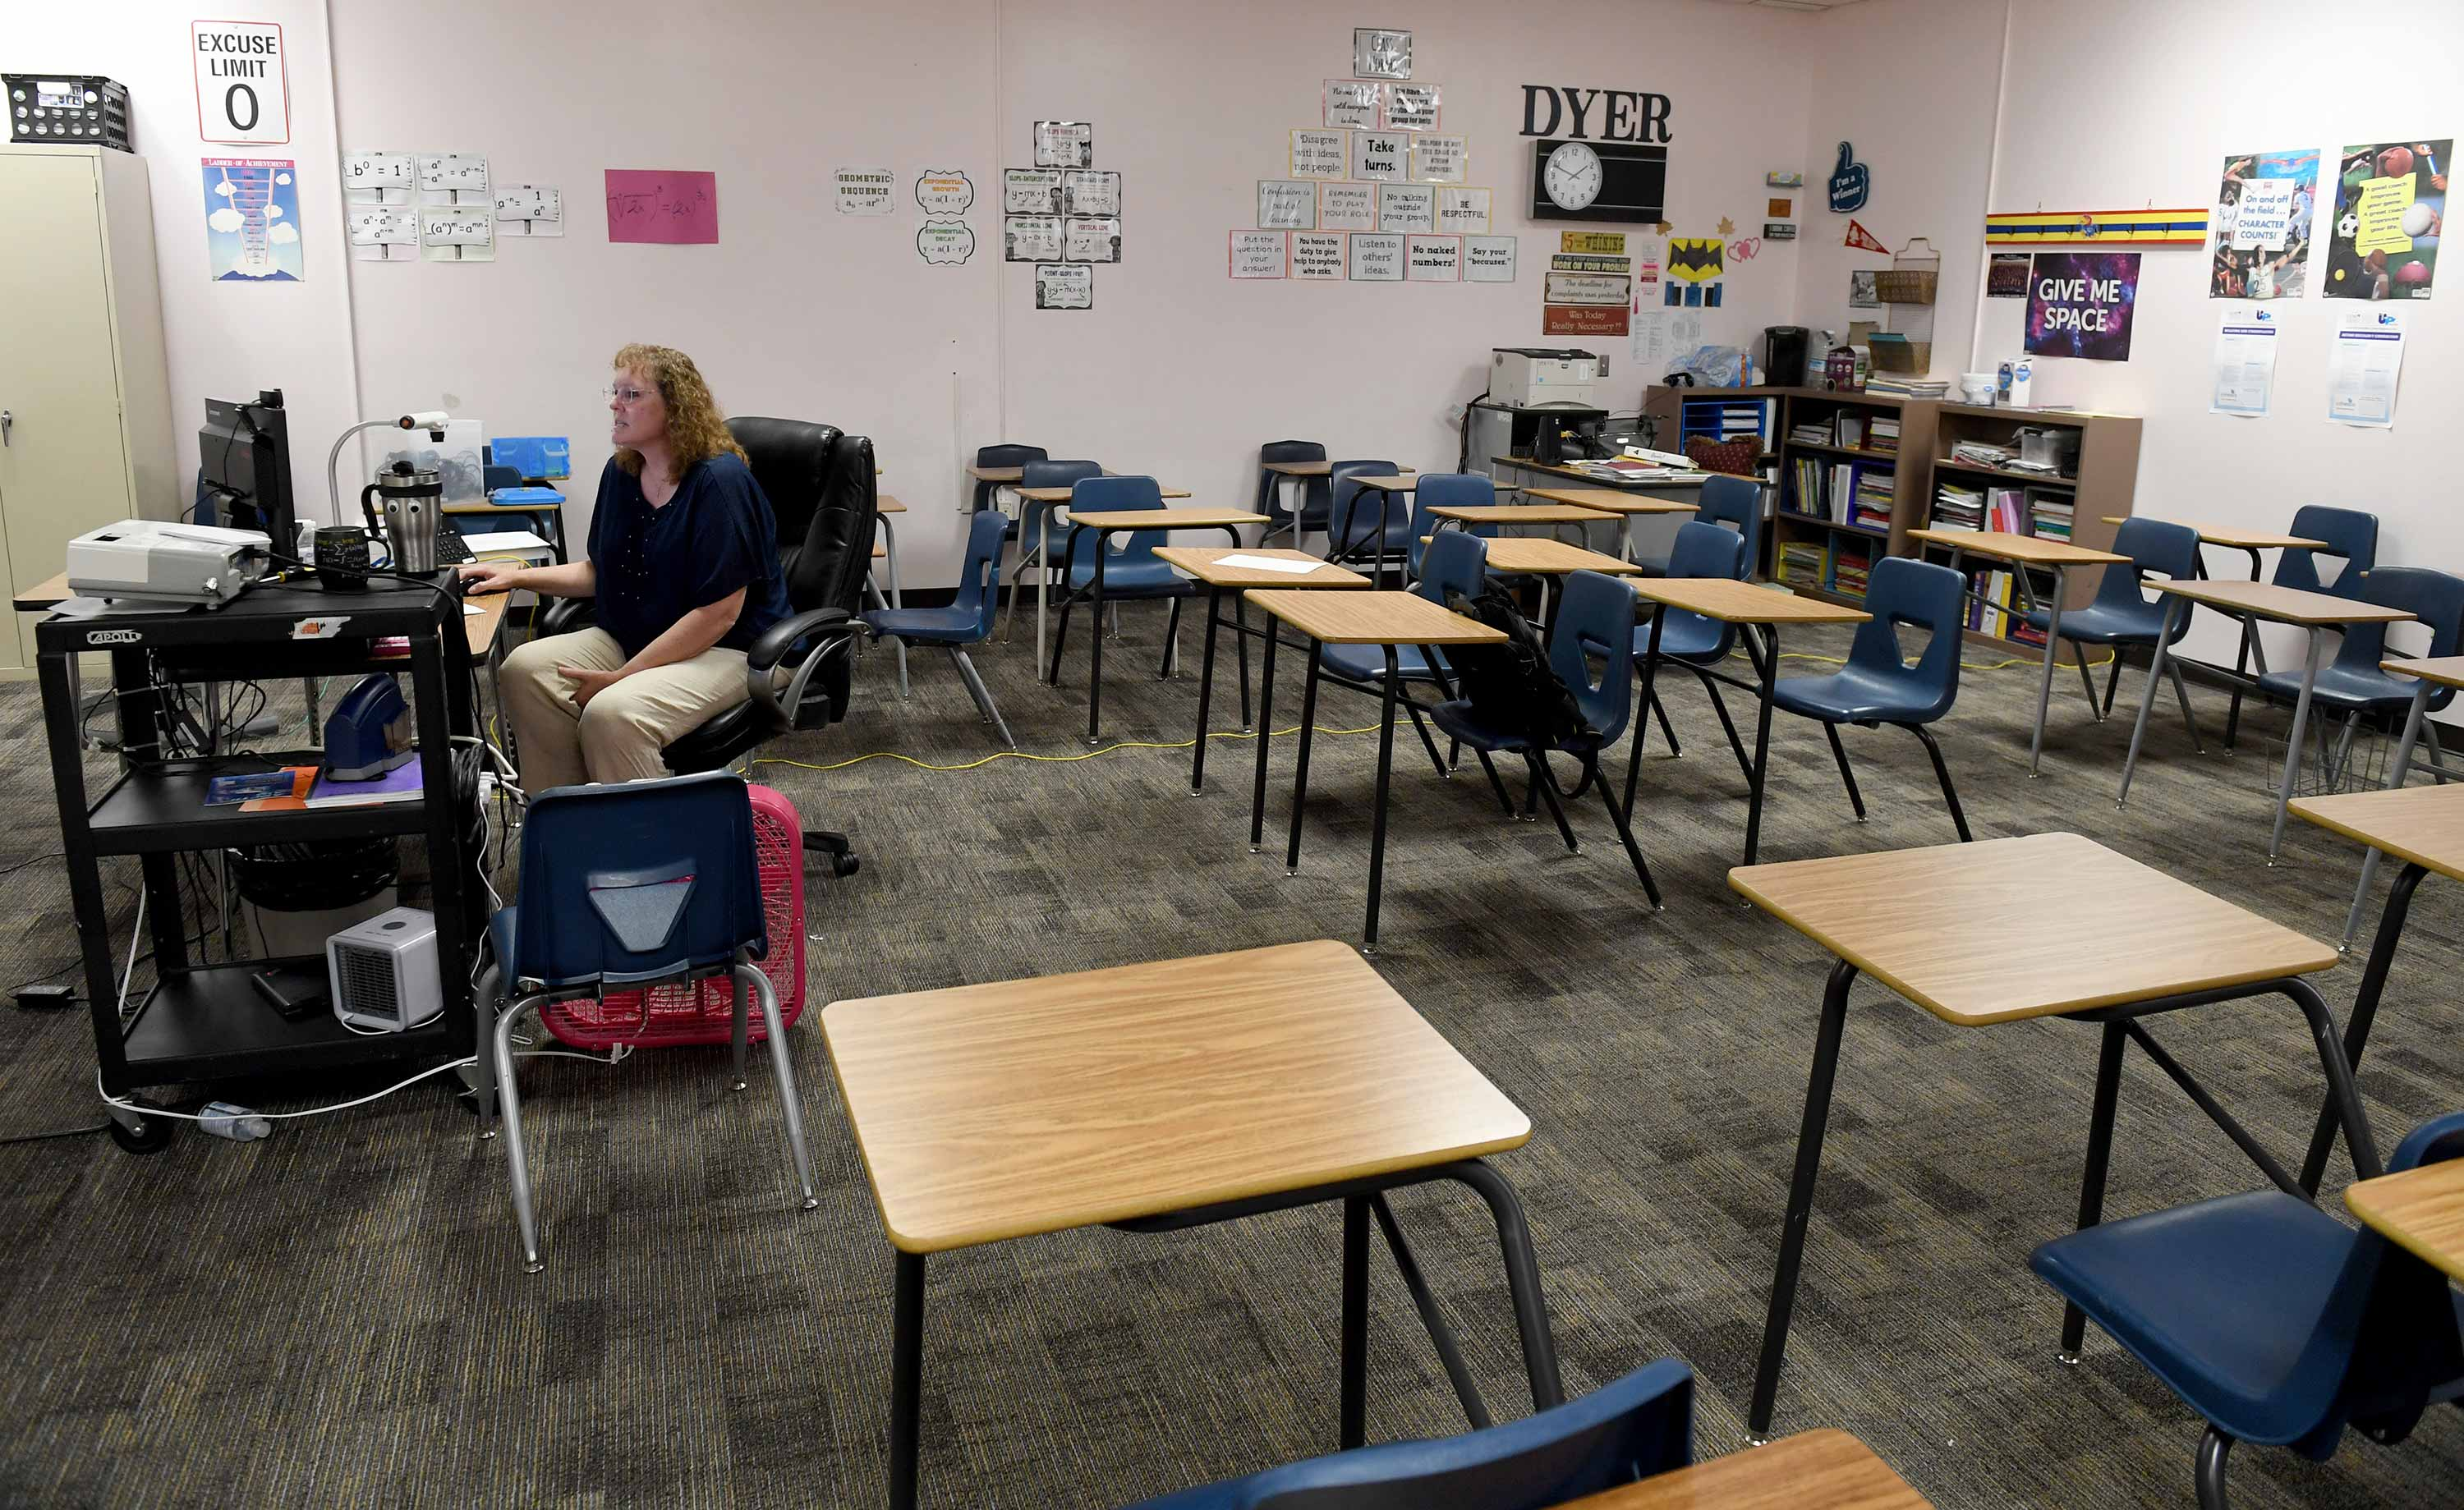 A lone teacher faces a computer screen in an empty classroom full of nearly arranged desks.